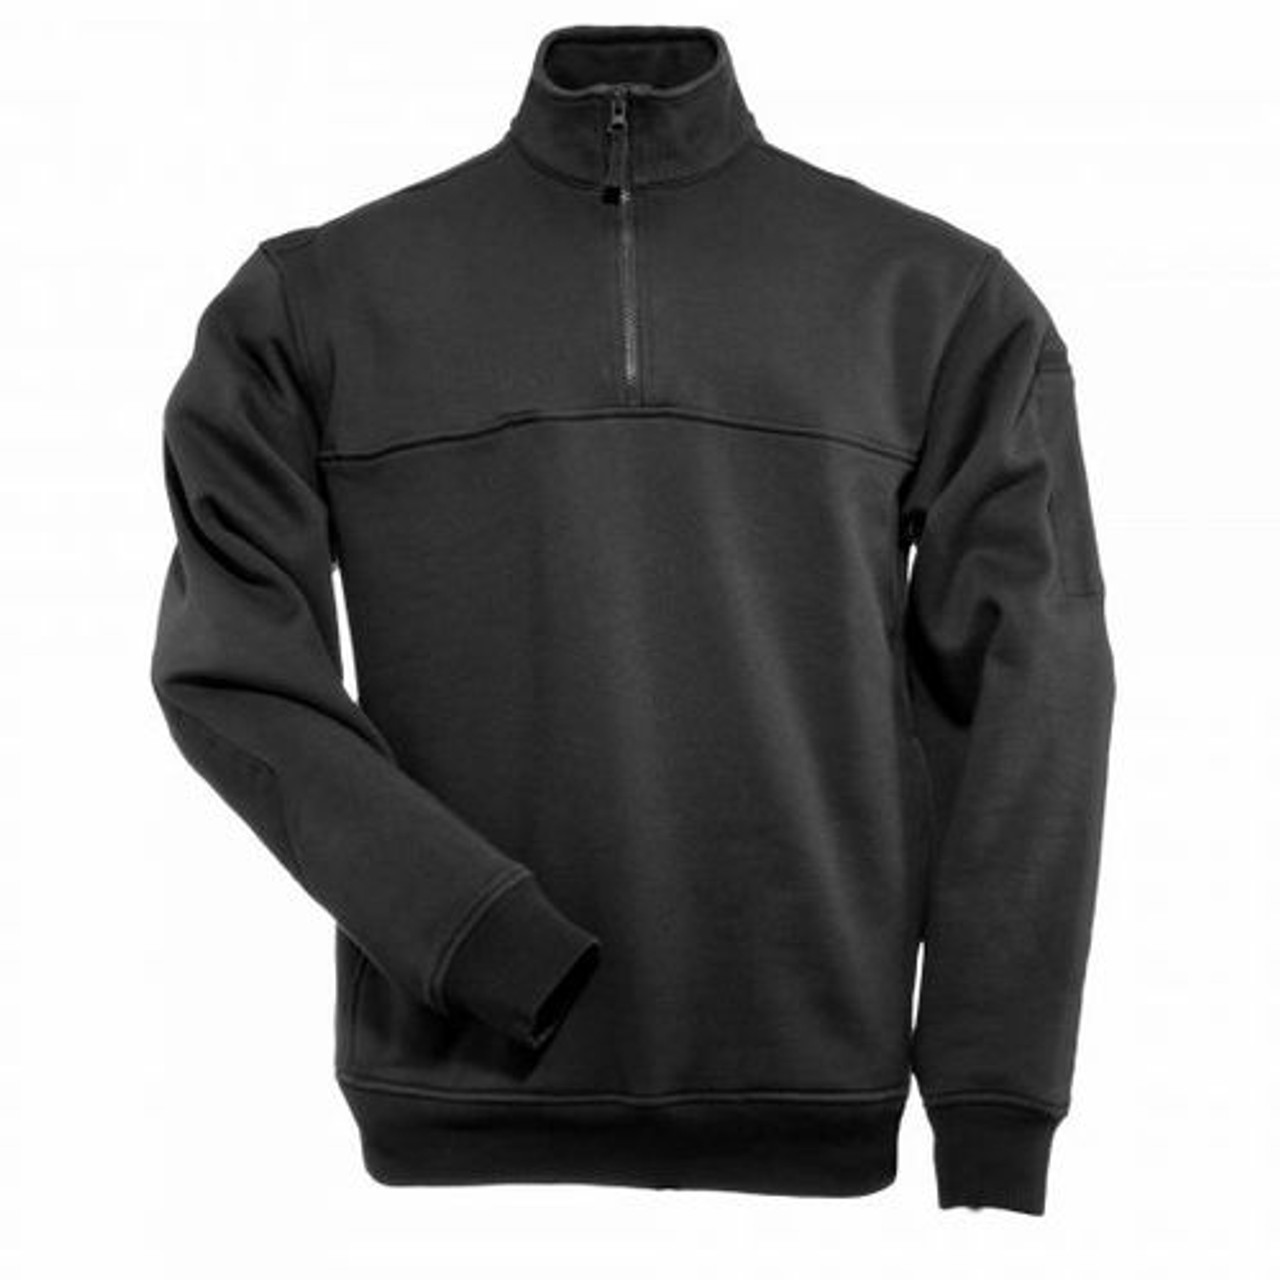 5.11 Tactical Pullover 1/4 ZIP JOB SHIRT, 80% cotton 20% polyester, Chest Break-Through™ pocket with hook and loop fastener divider, Mic pockets at both shoulders, Regular Fit, 72314